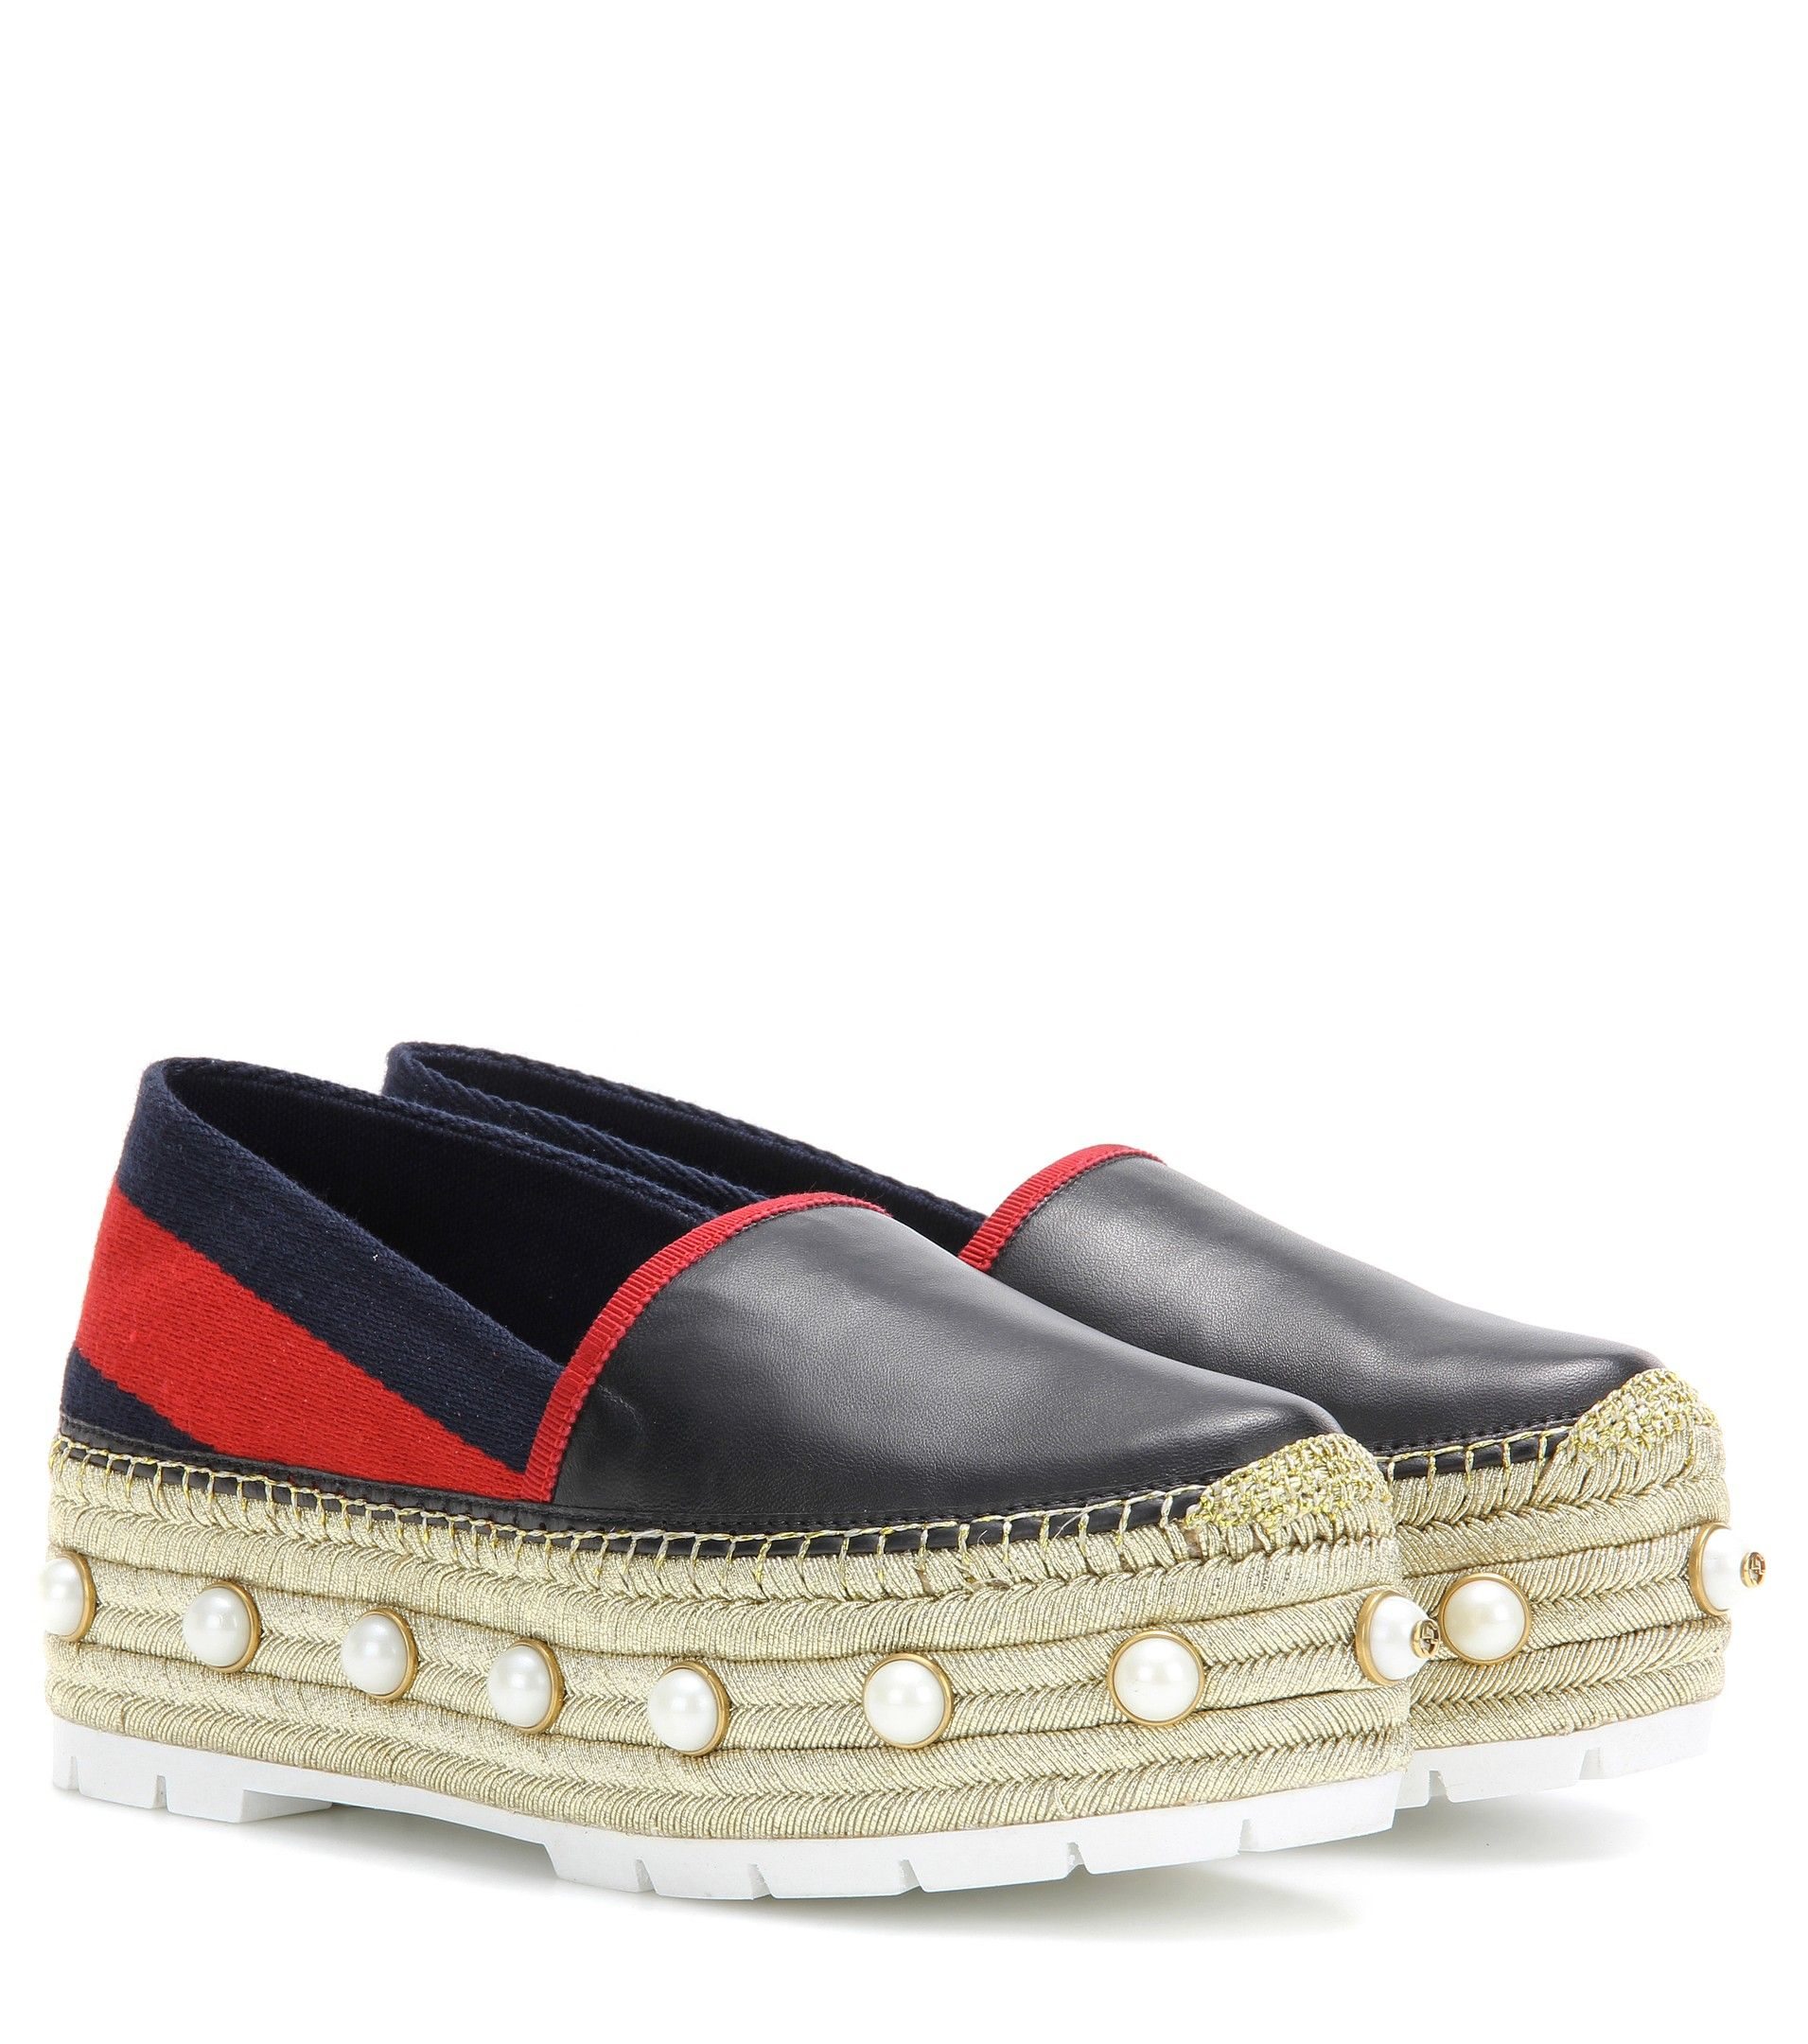 bacd4bc4cbce Gucci - Embellished leather platform espadrille - The metallic golden jute  sole is adorned with faux pearls